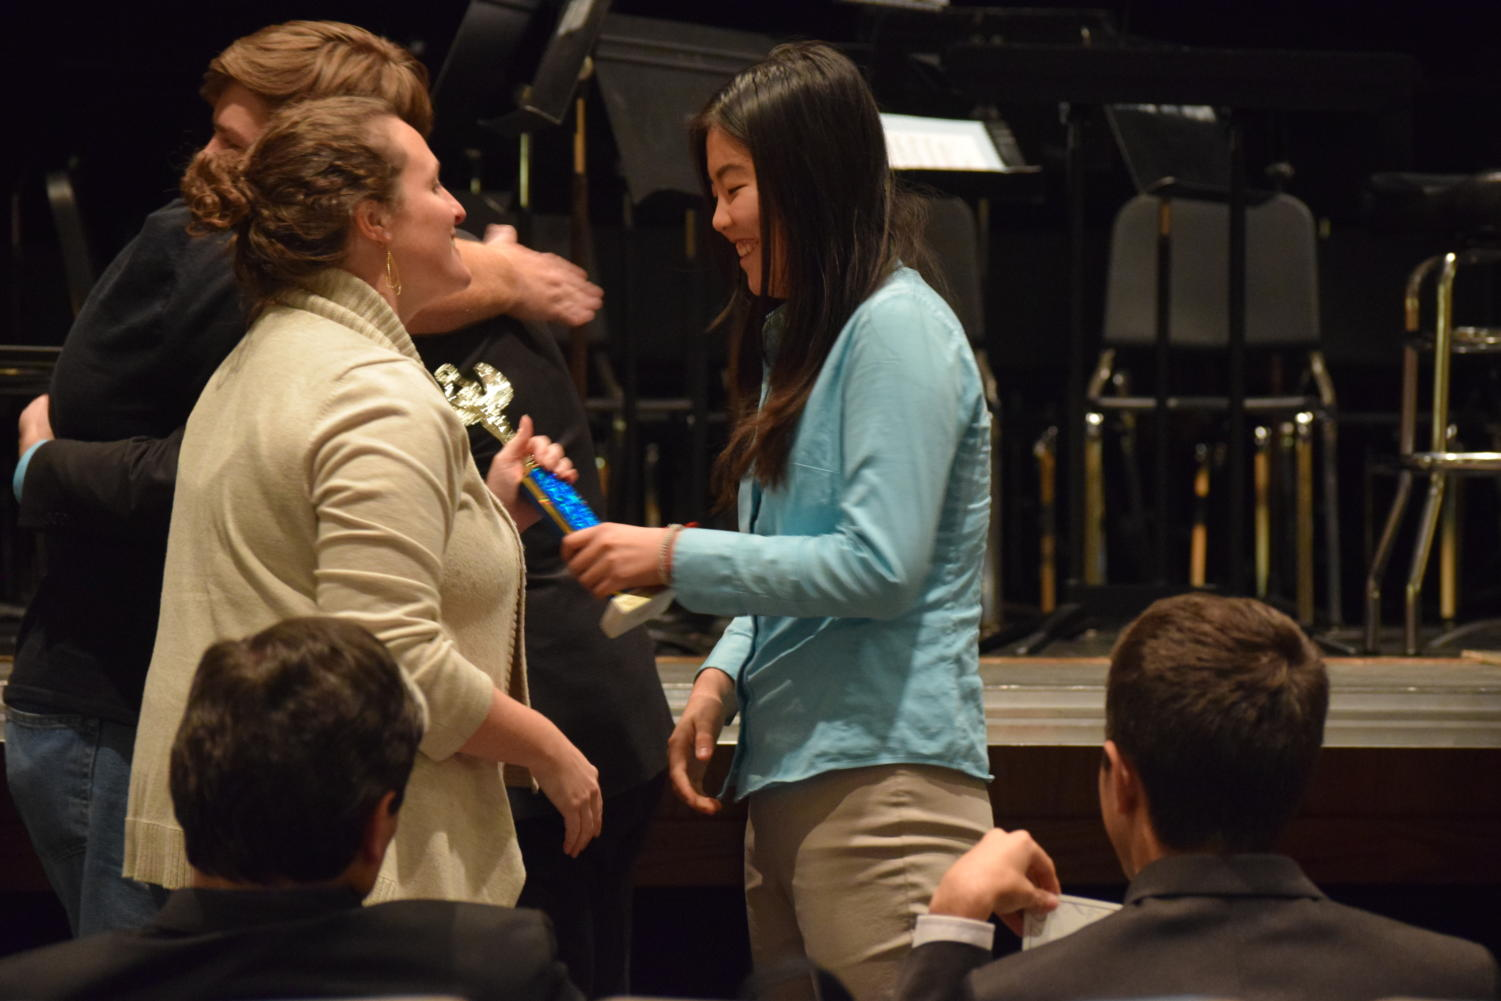 """With a trophy in hand, speech and debate coach Cara Borgsmiller congratulates senior Cheryl Ma. She alongside fellow senior Ryan O'Connor qualified for the 2018 National Speech & Debate Tournament in public forum debate after going undefeated at the Eastern Missouri district tournament. """"It was really exciting. It was different than it is for most people because Ryan and I were undefeated the whole tournament, so they decided [we qualified] automatically even before the actual awards were announced since we were the only undefeated team,"""" Ma said. """"We found out before the actual awards ceremony, so it relieved a lot of pressure because usually people are very anxious during awards."""""""